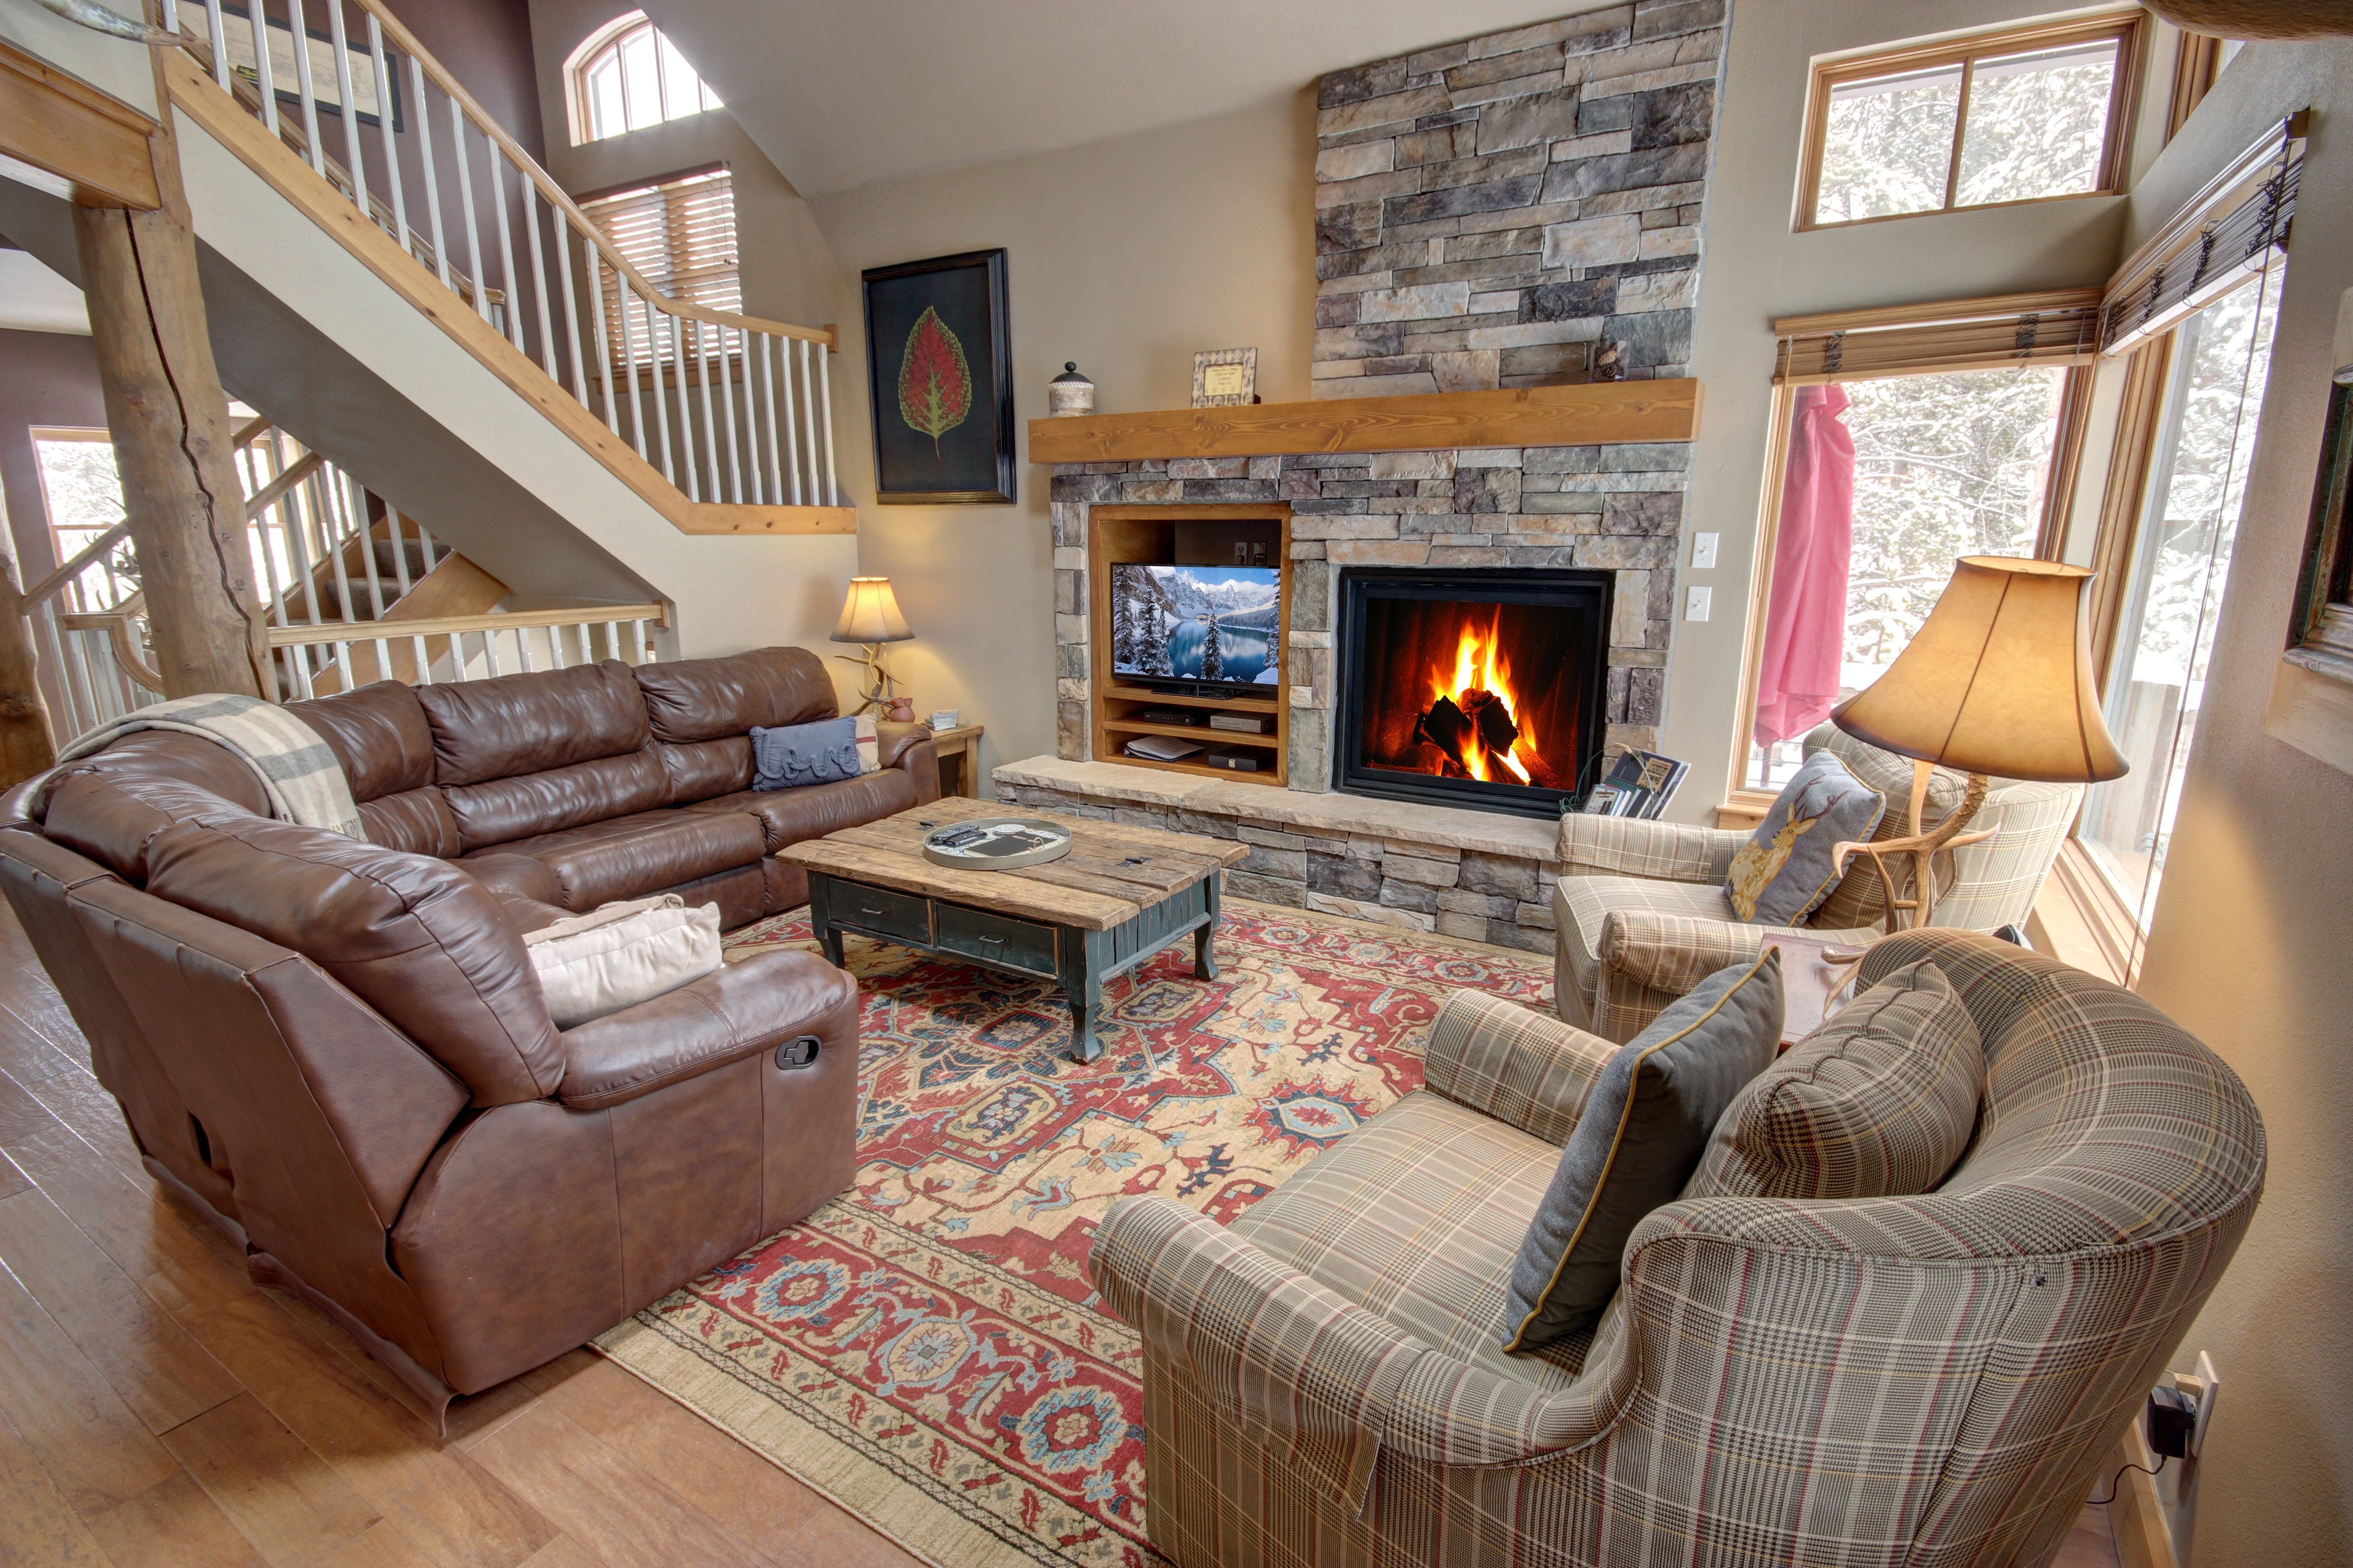 Living room with warm and cozy fire